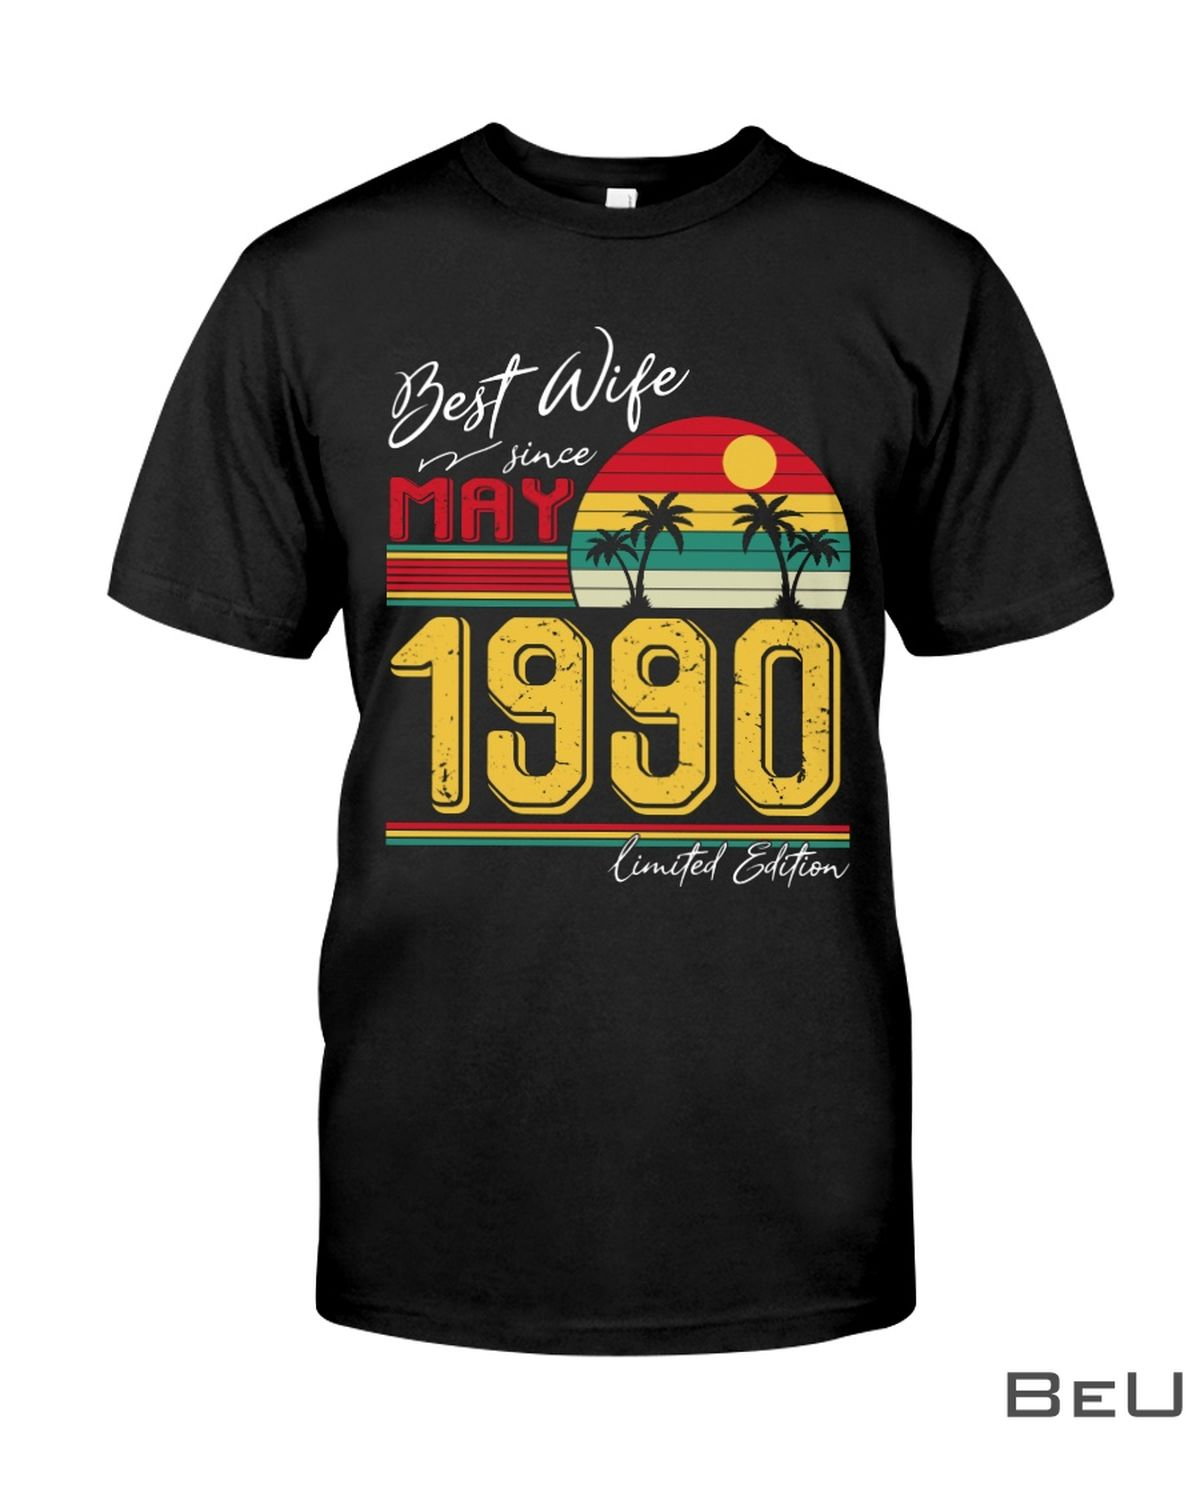 Best Wife Since May 1990 Shirt